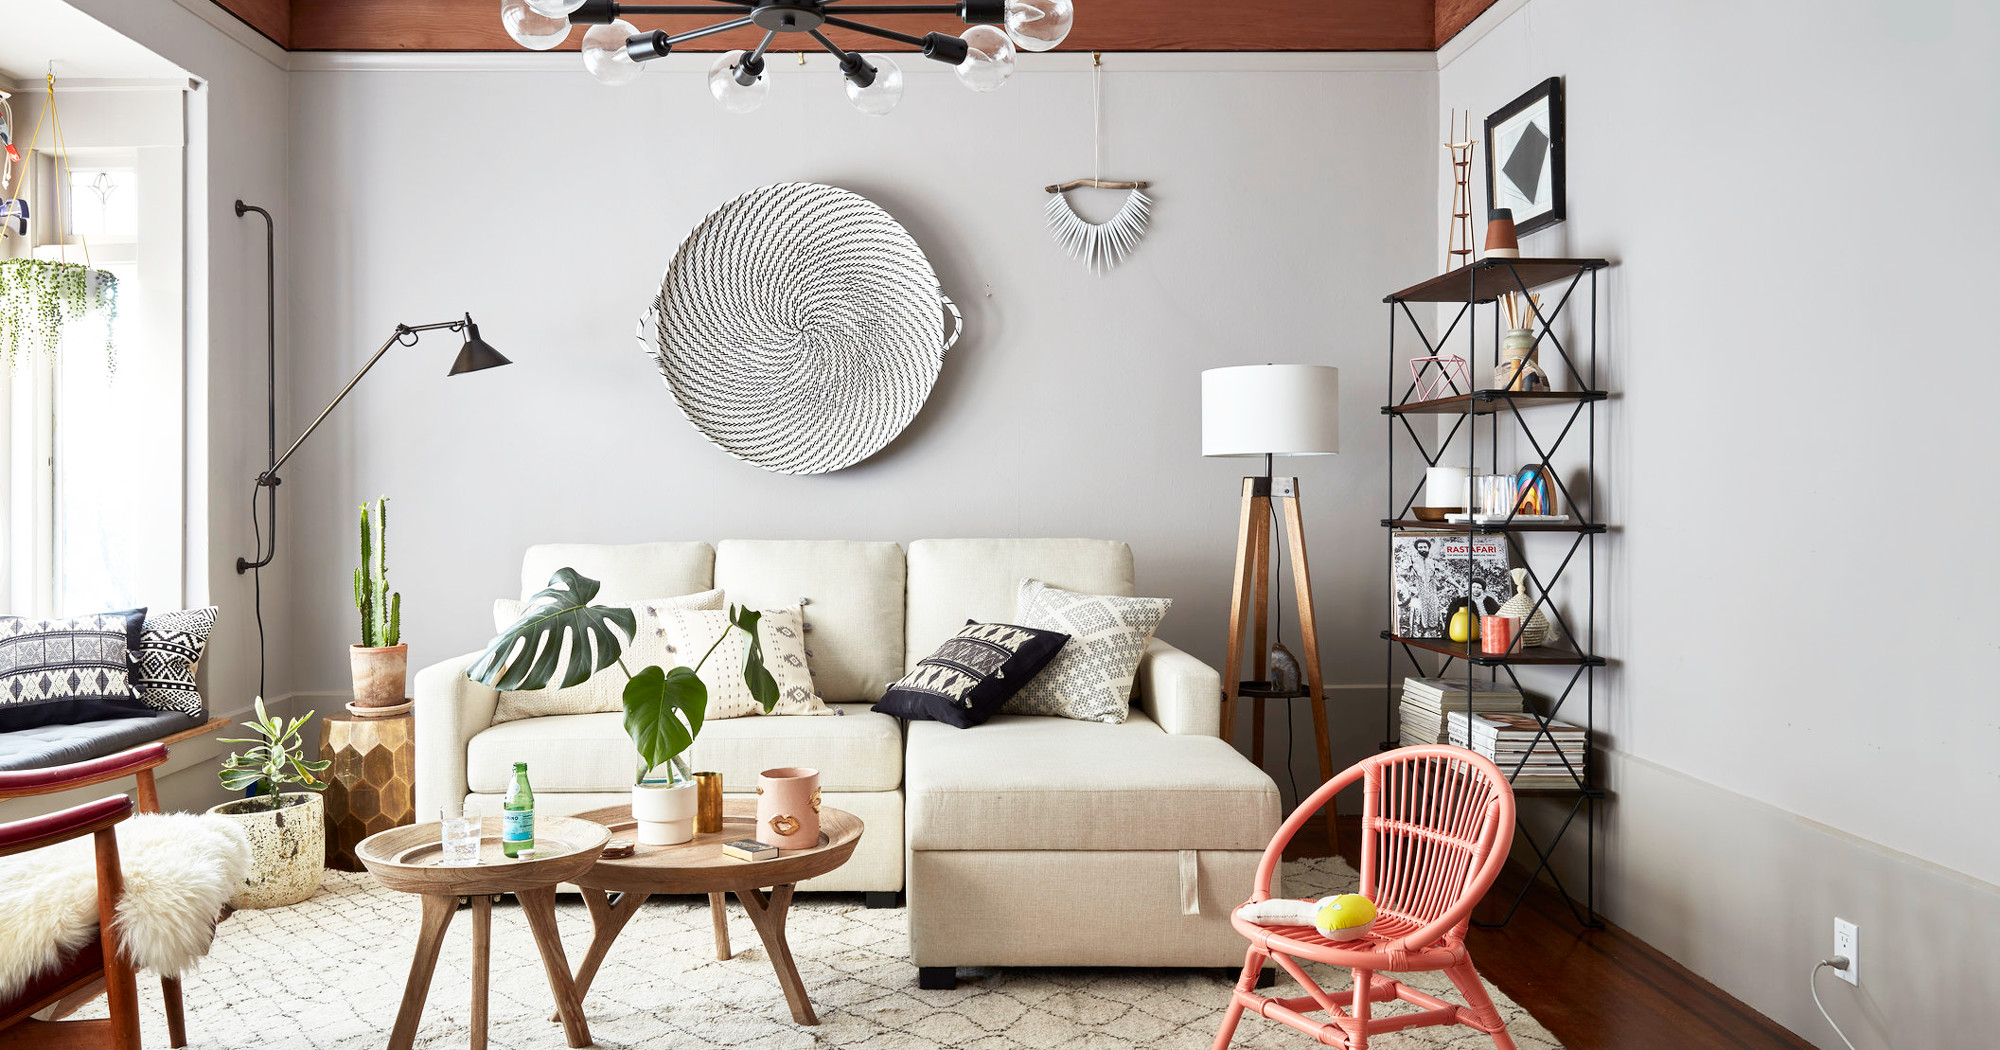 5 Interior Design Ideas for Small Living Room Spaces Post -